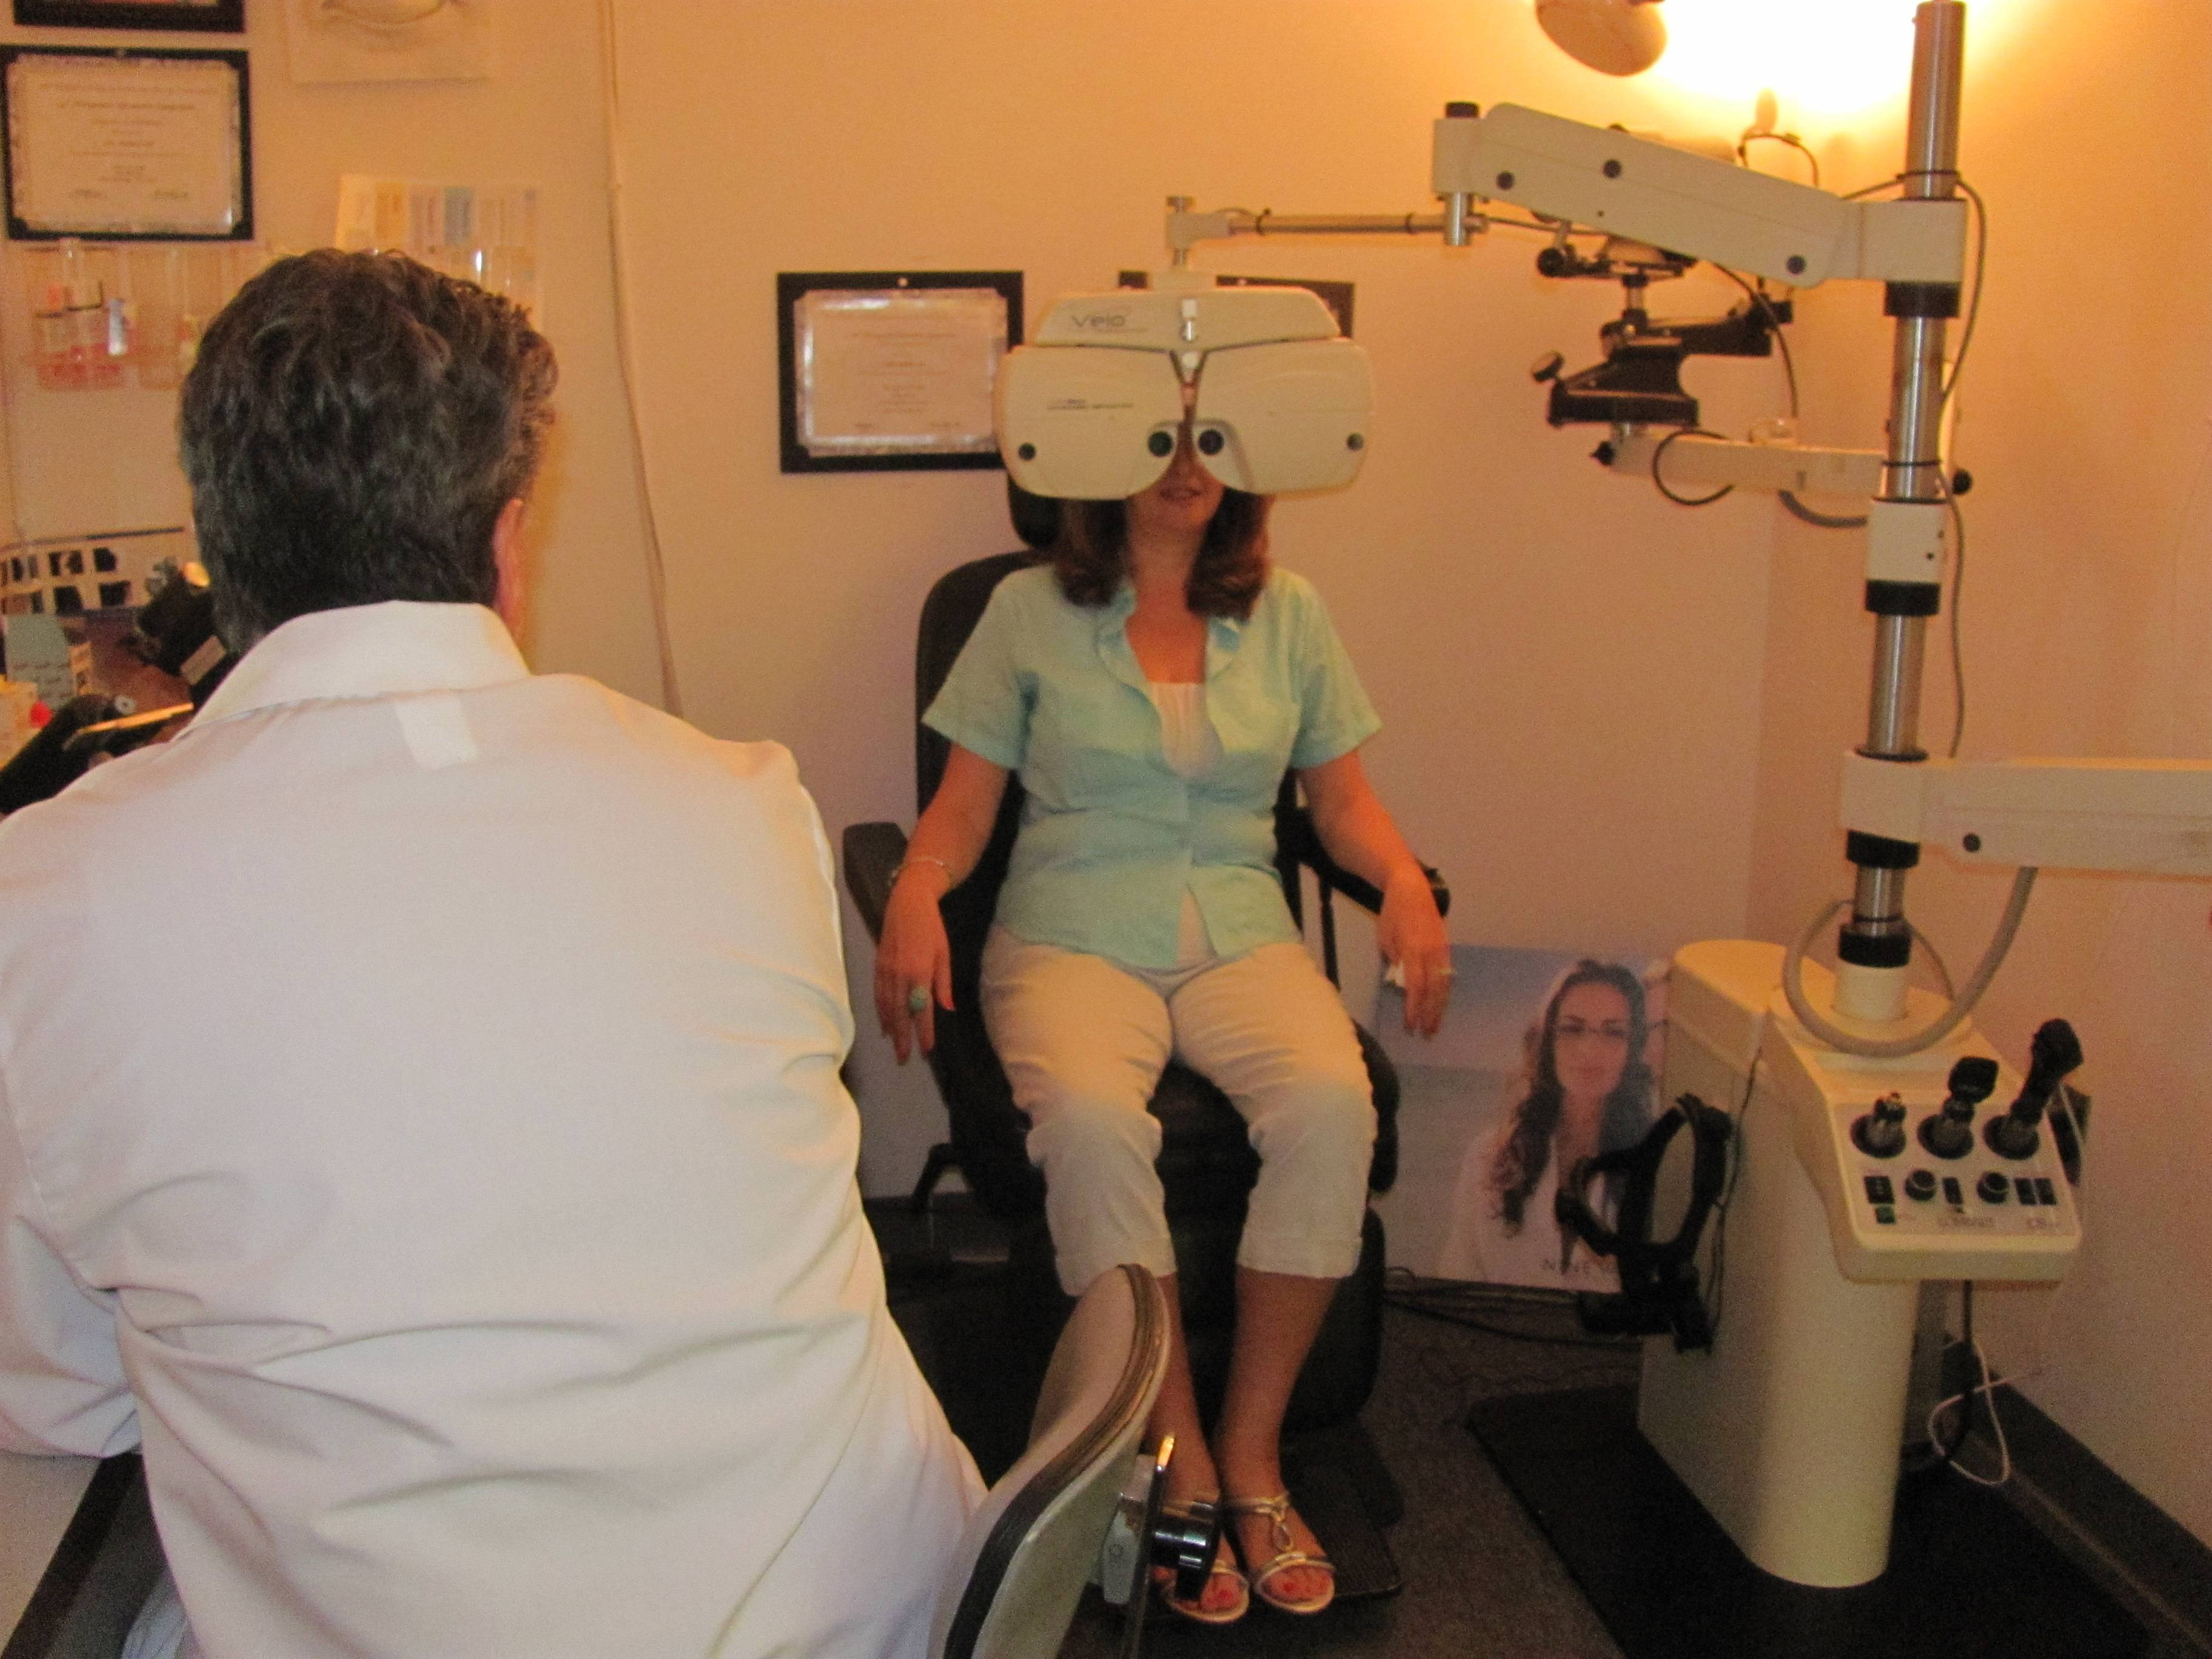 Dr. Lior Koppel provides the best eye exams in South Plainfield. Call 908-822-1100 for a thorough eye exam South Plainfield